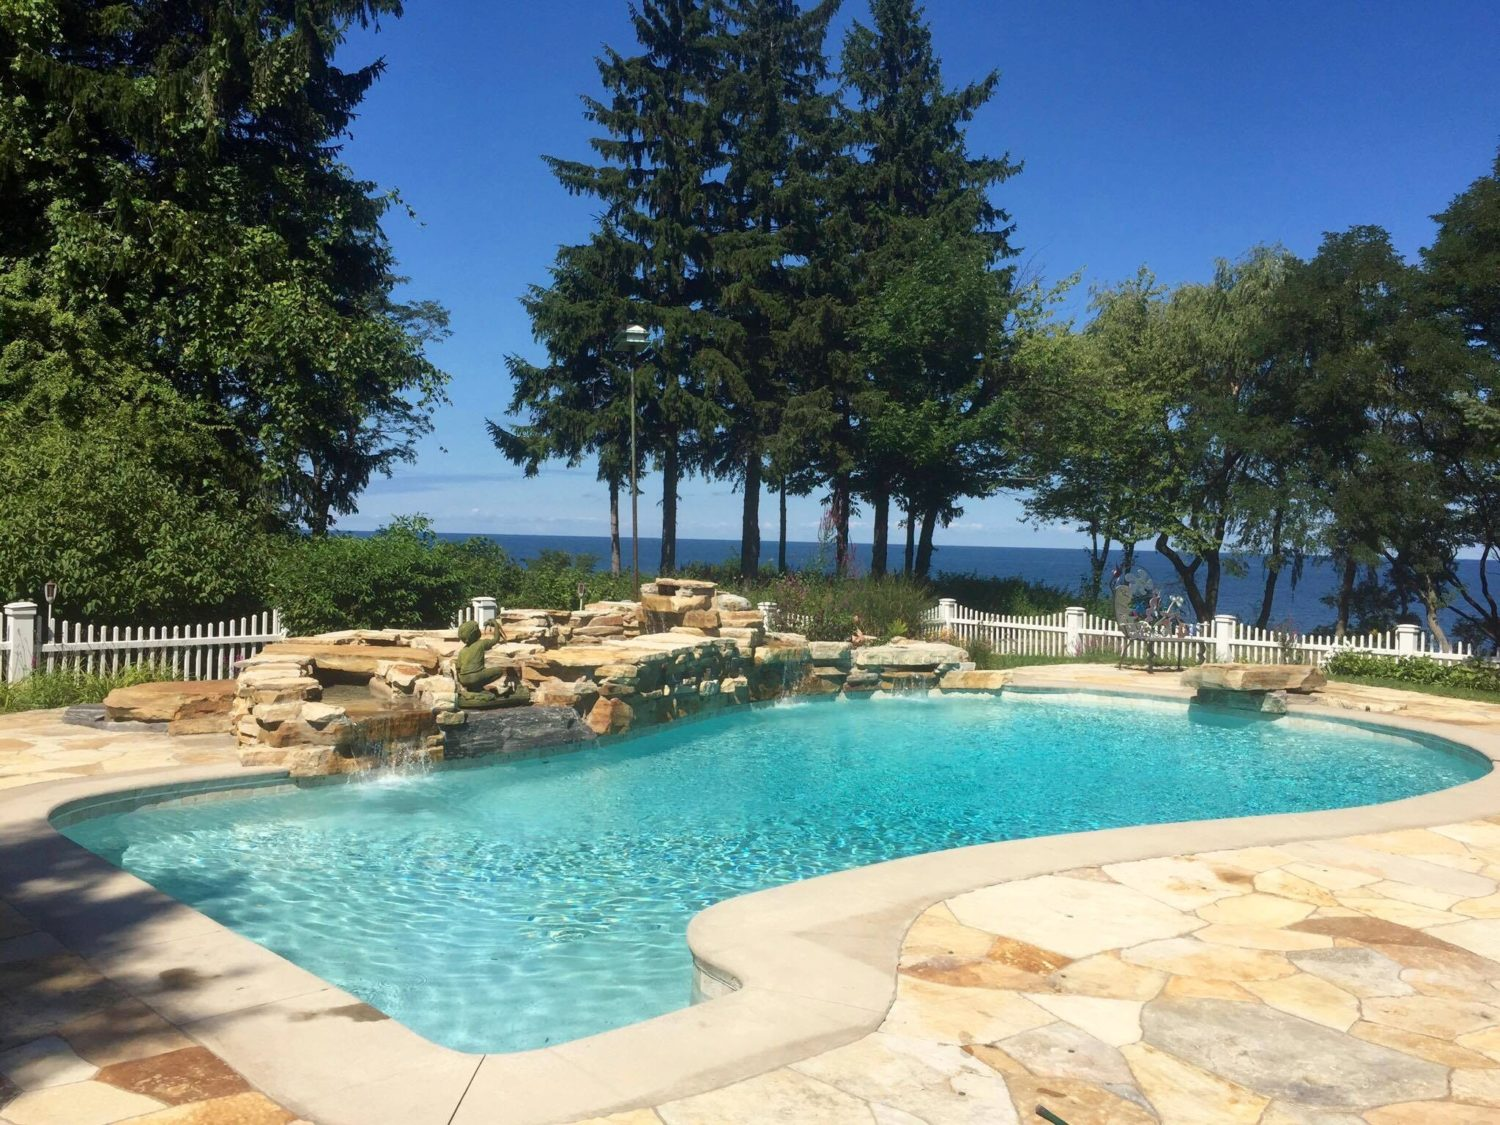 inground pool, Waterfront Pool with Rockwall, Waterfall, grotto, Irondequoit Bay, Rochester NY, Lake Ontario, Precision Pool and Spa